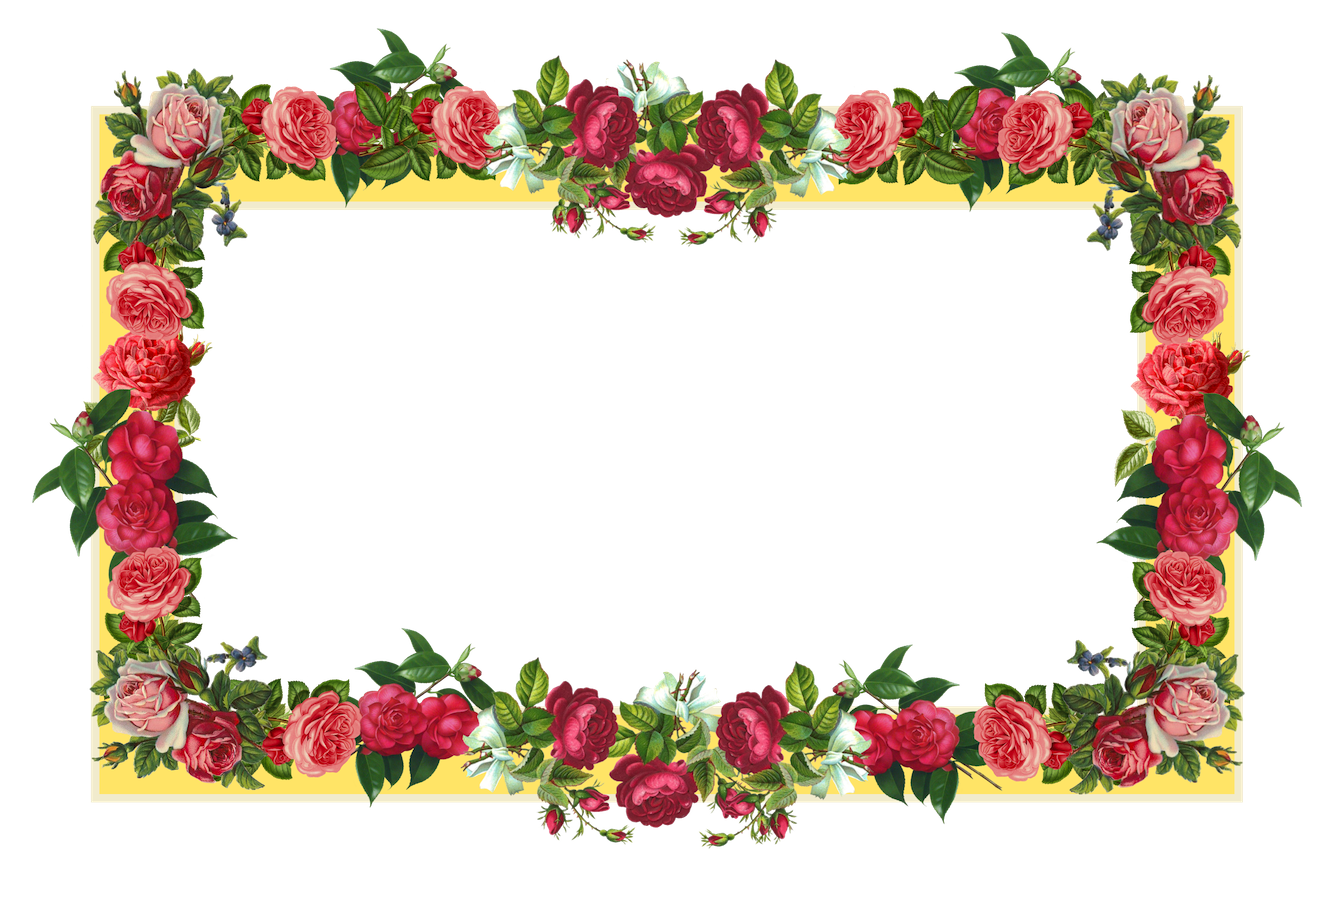 Free flowers design download. Border designs png